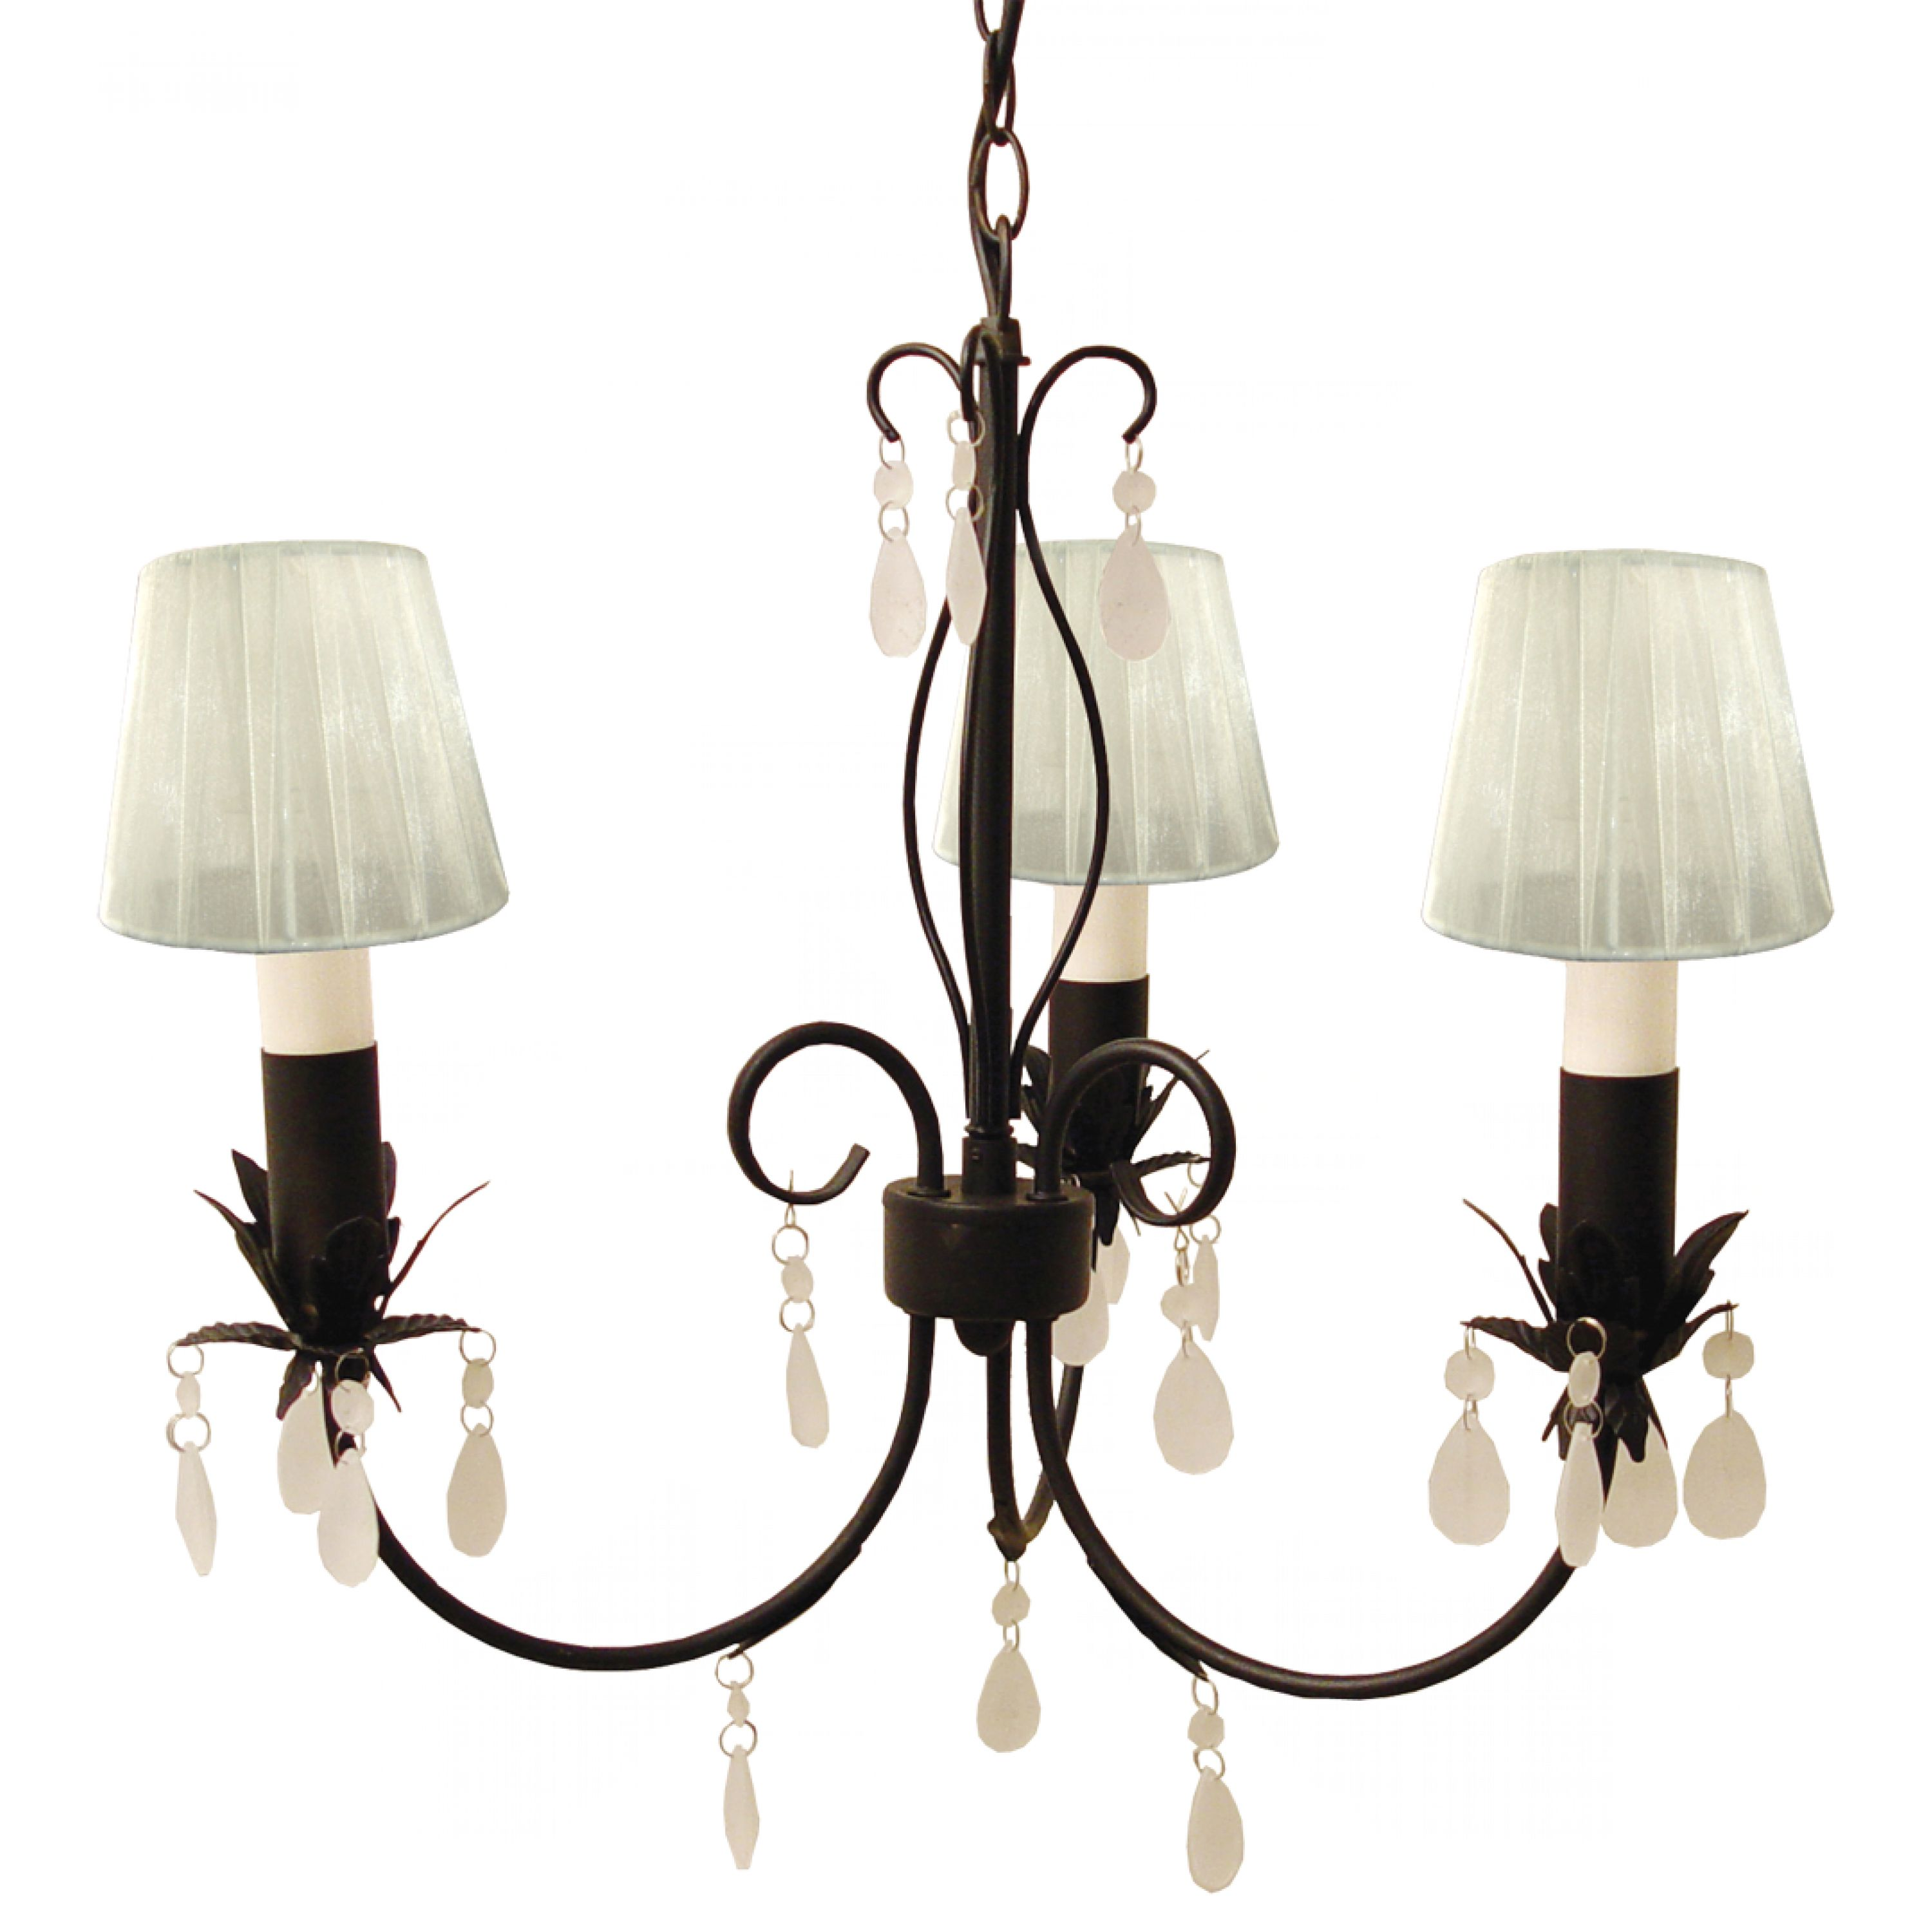 Danika 8 Light (satin silver, black)